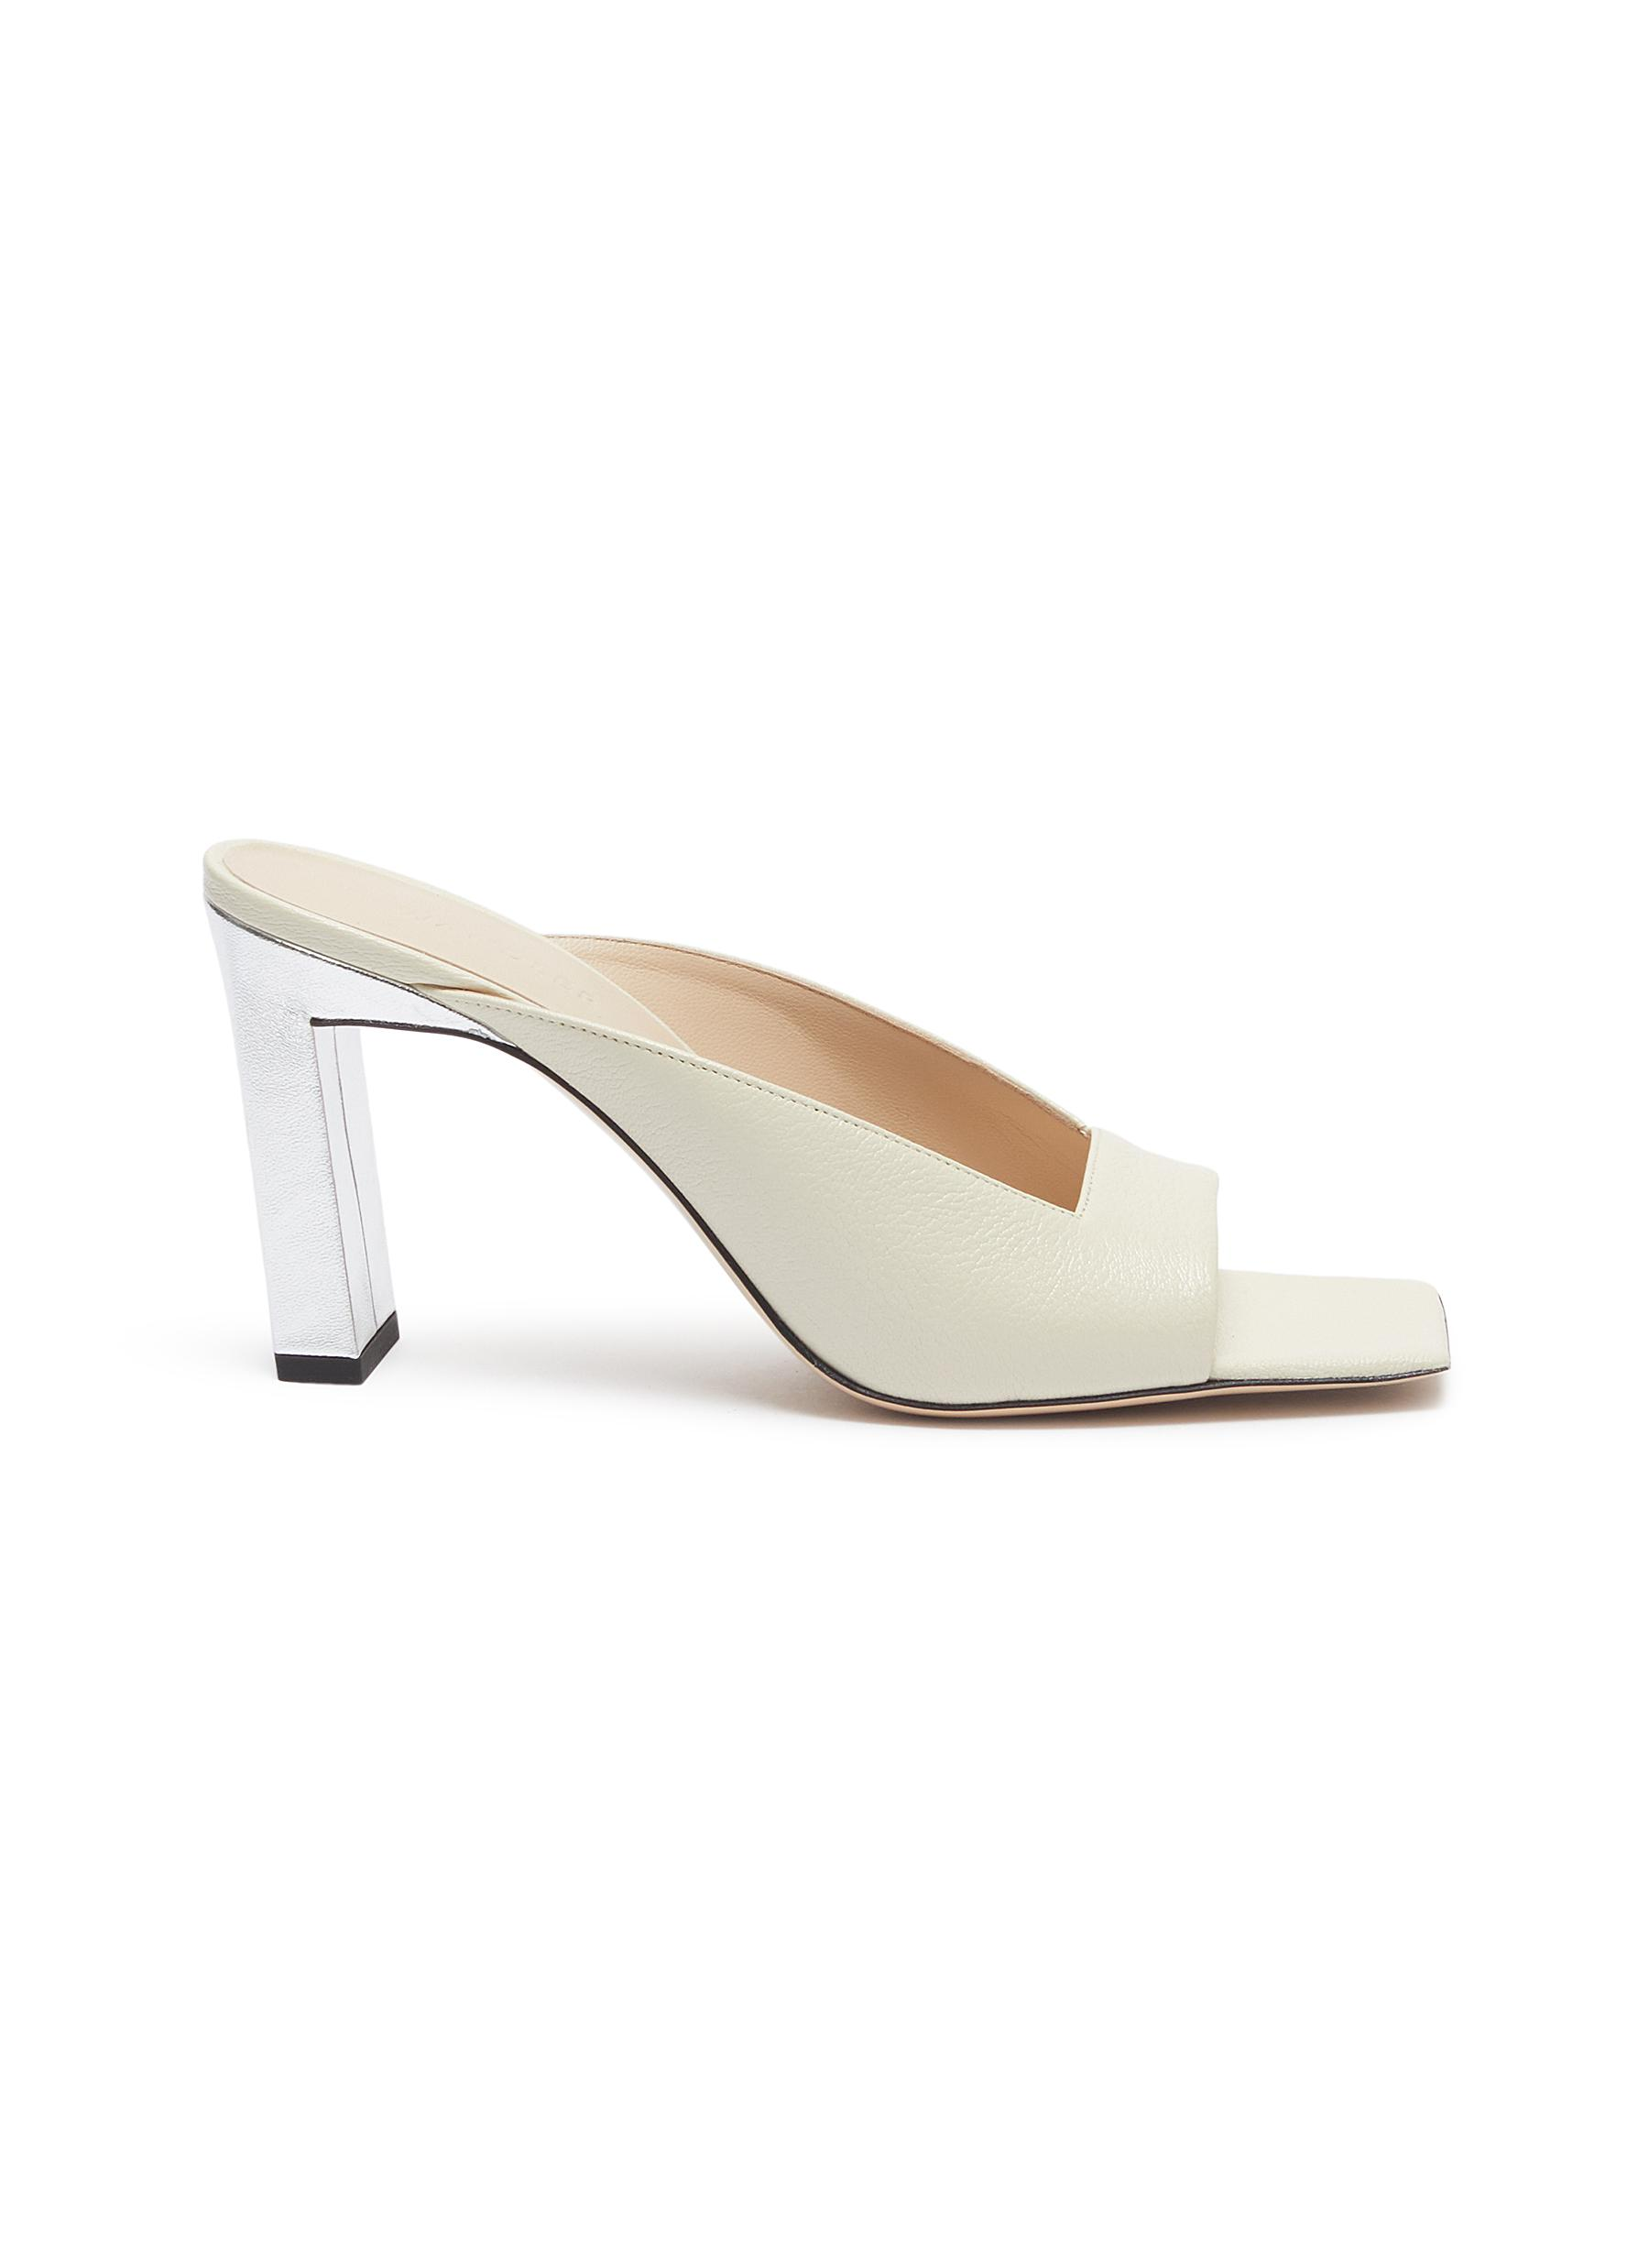 Isa square vamp leather sandals by Wandler